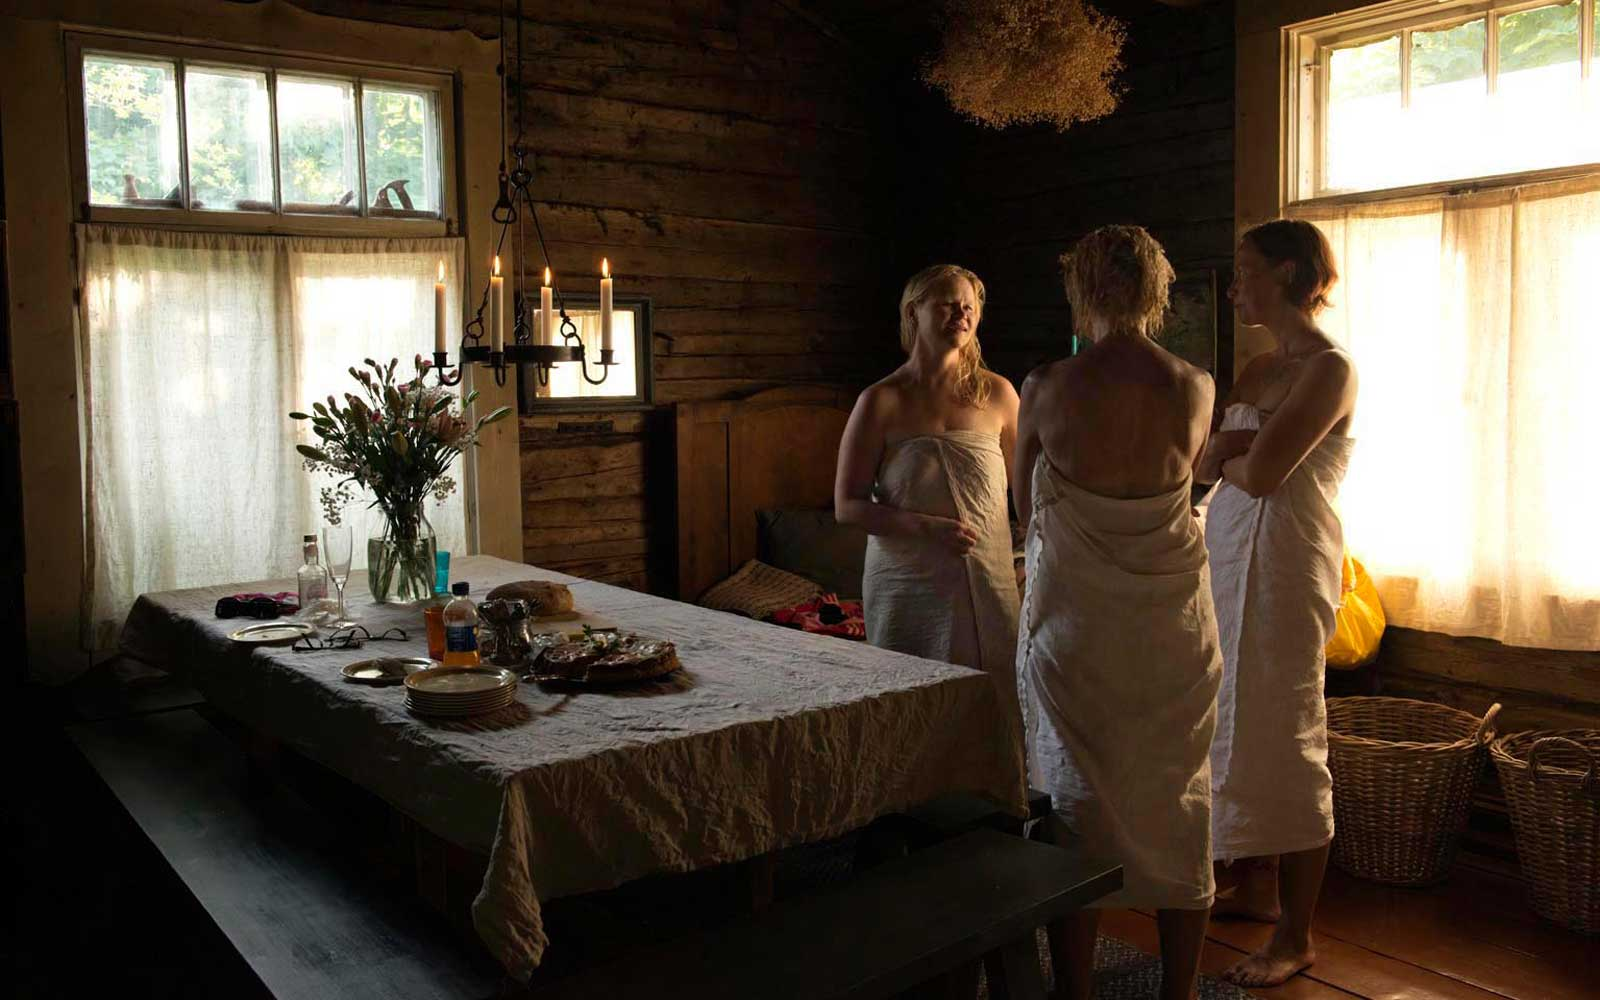 Meeting-in-the-sauna-Finland Strange culture of some countries in the world.  %Post Title, %Image Name